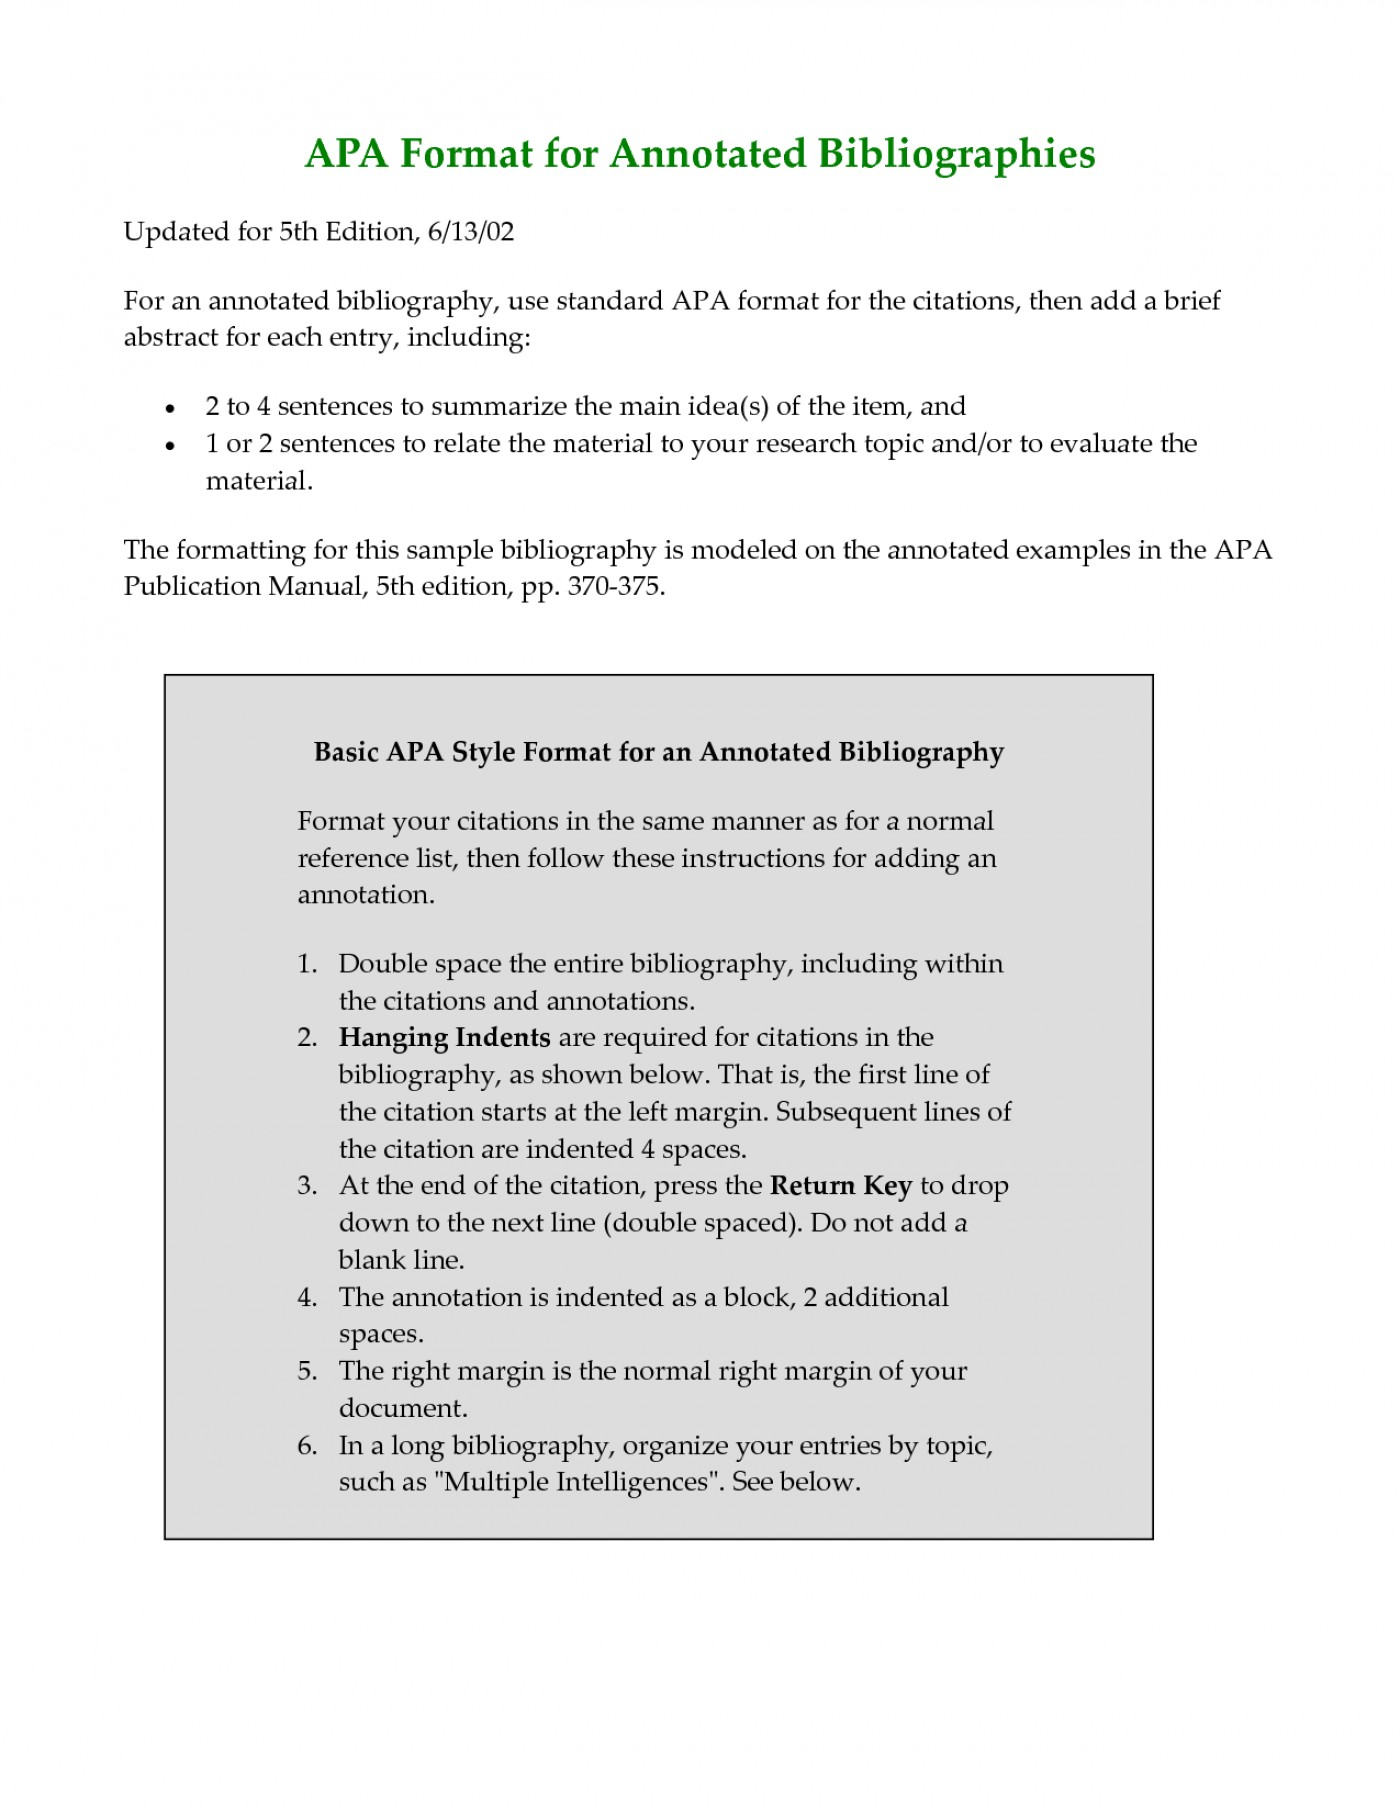 004 Annotated Bibliography Research Paper Example Imposing Proposal And 1400